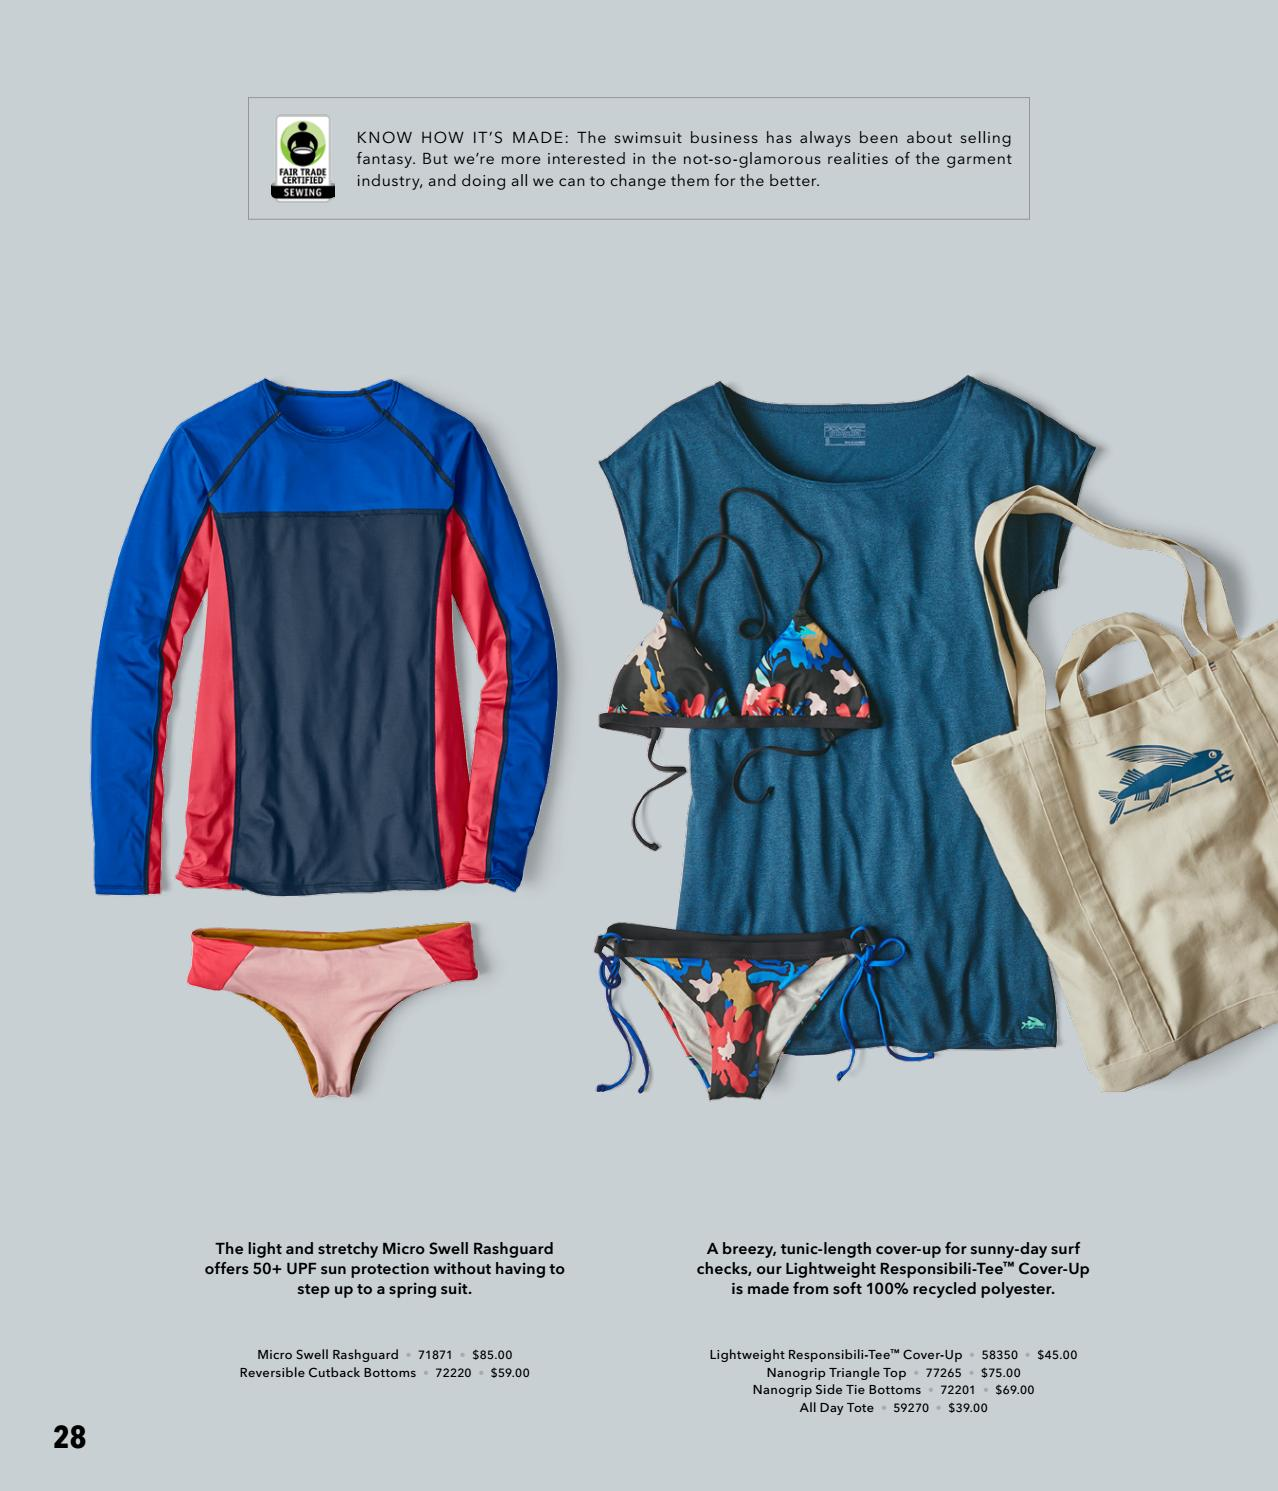 d51a6b60b Patagonia Surf 2017 Catalog (U.S.) by Patagonia - The Cleanest Line ...